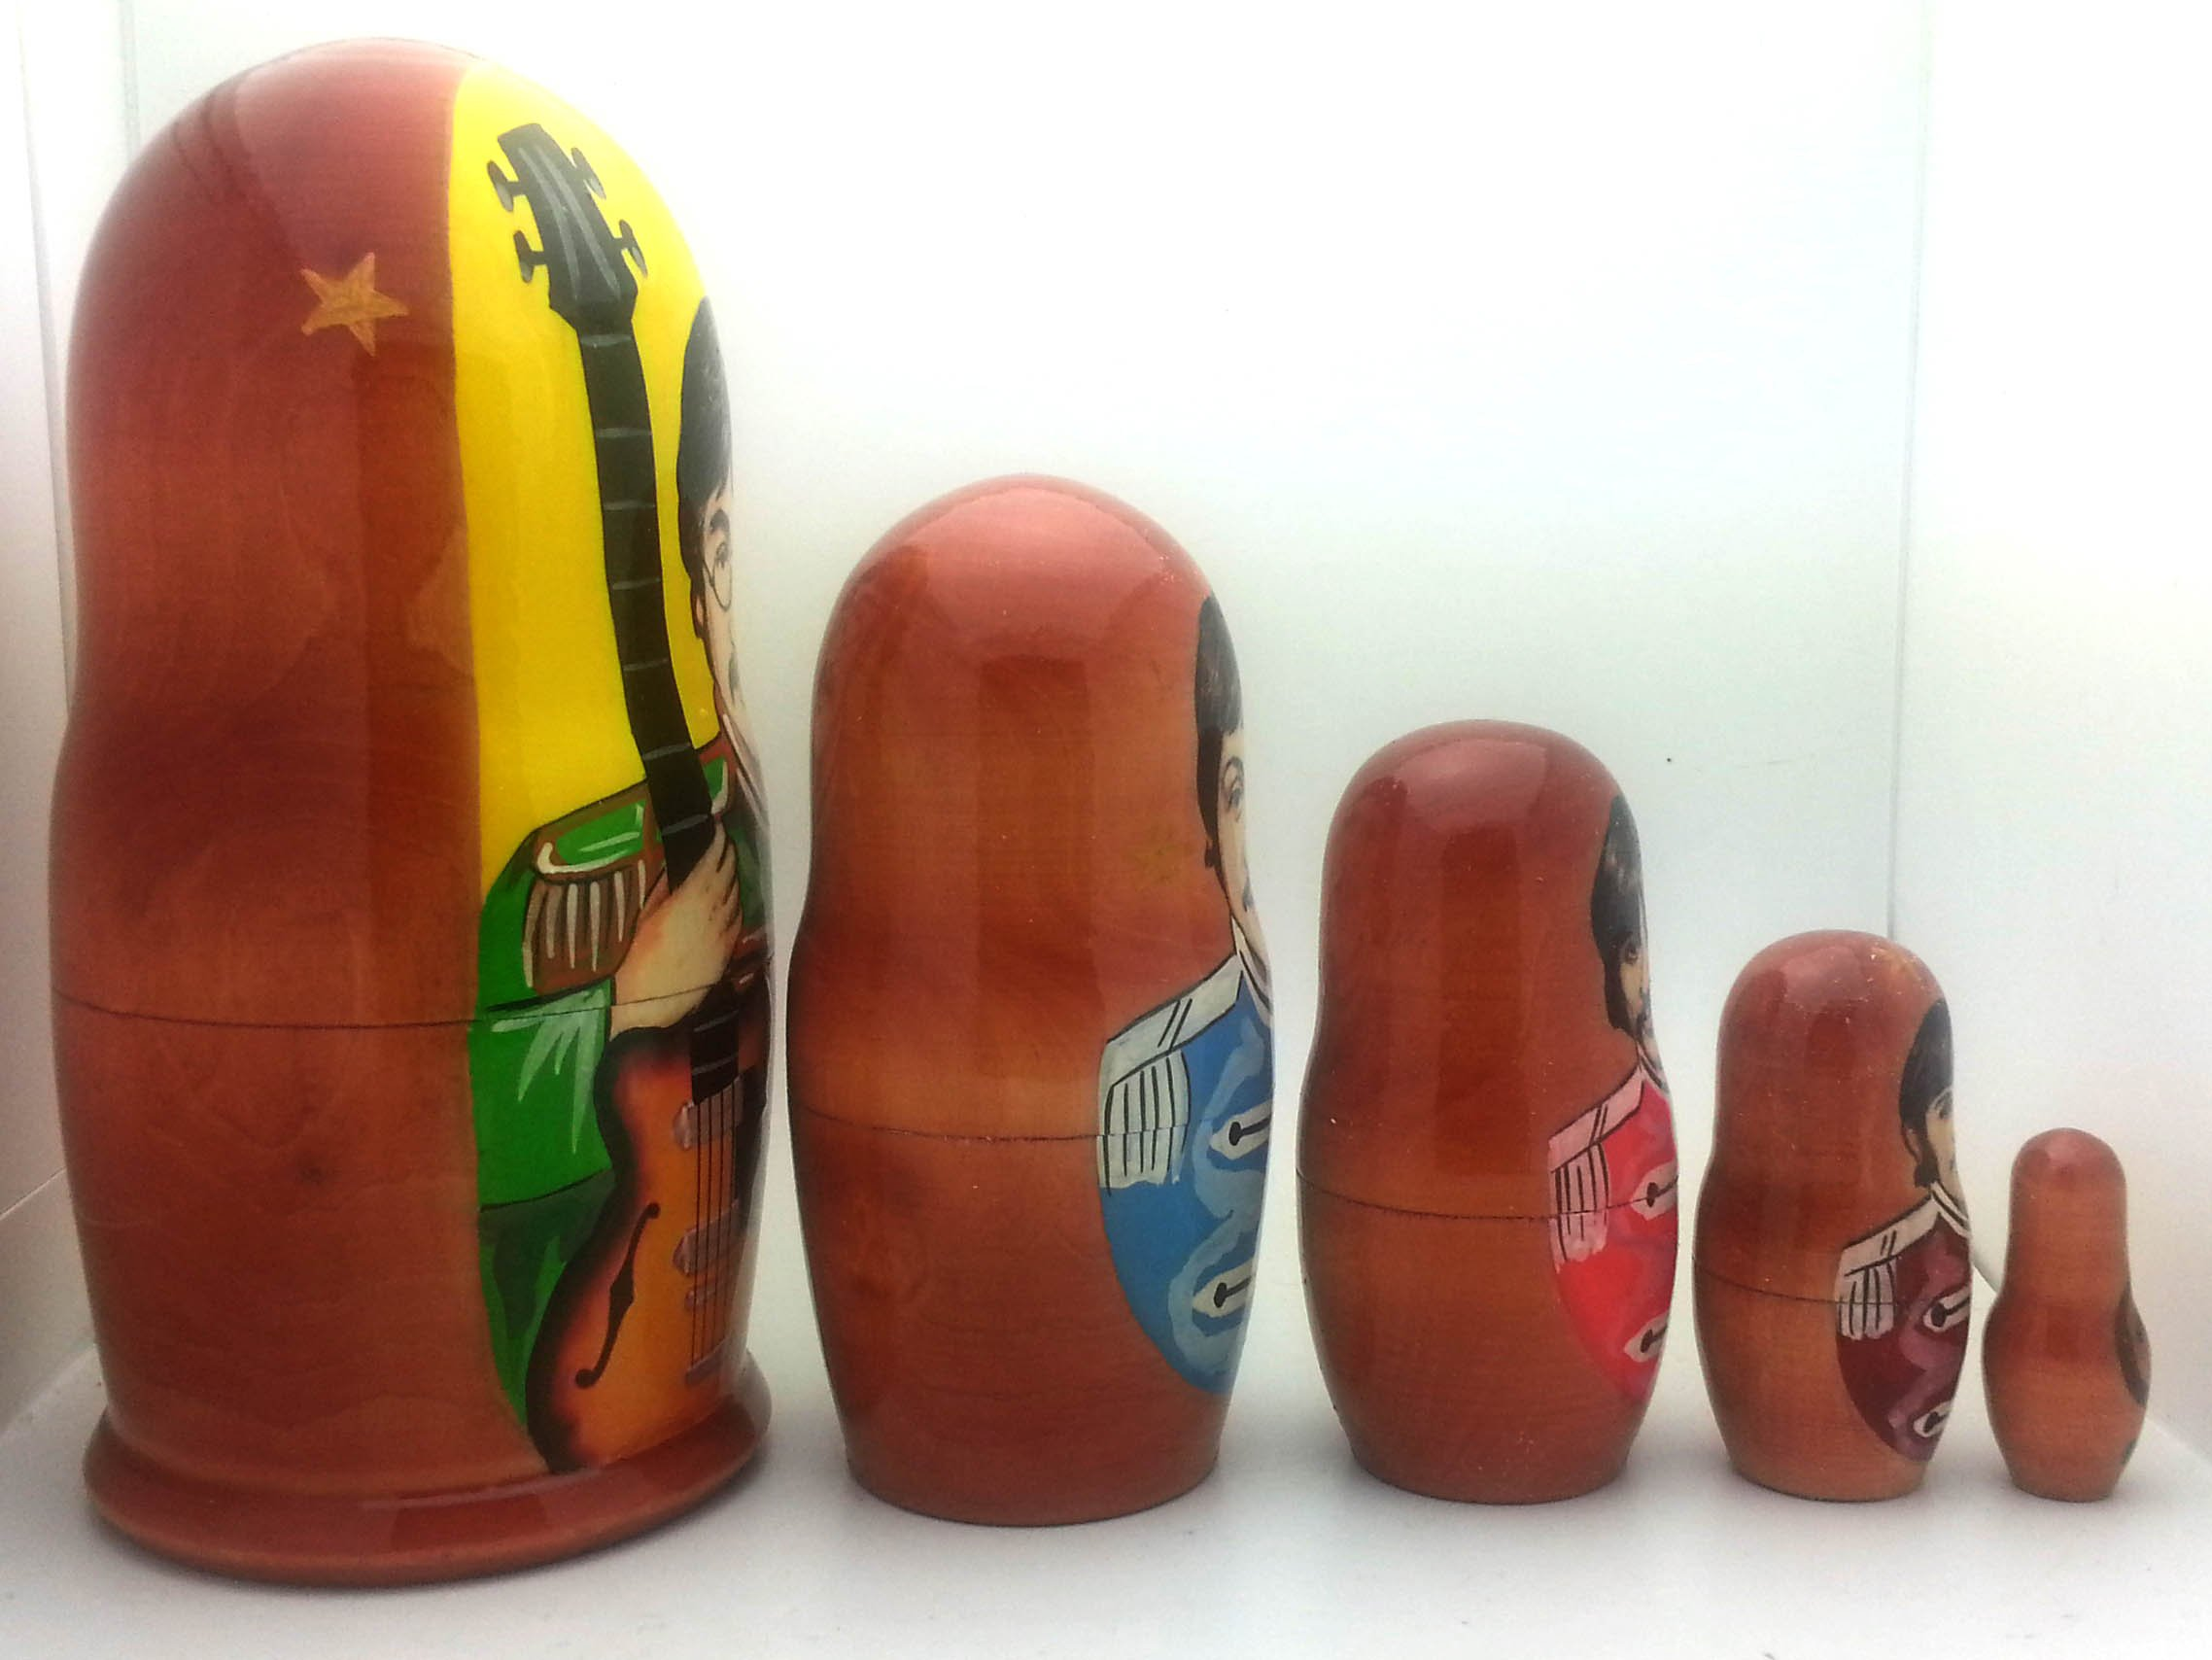 Beatles Sergent Pepper Russian Nesting dolls 5 piece DOLL Set 7'' by The Beatles (Image #3)